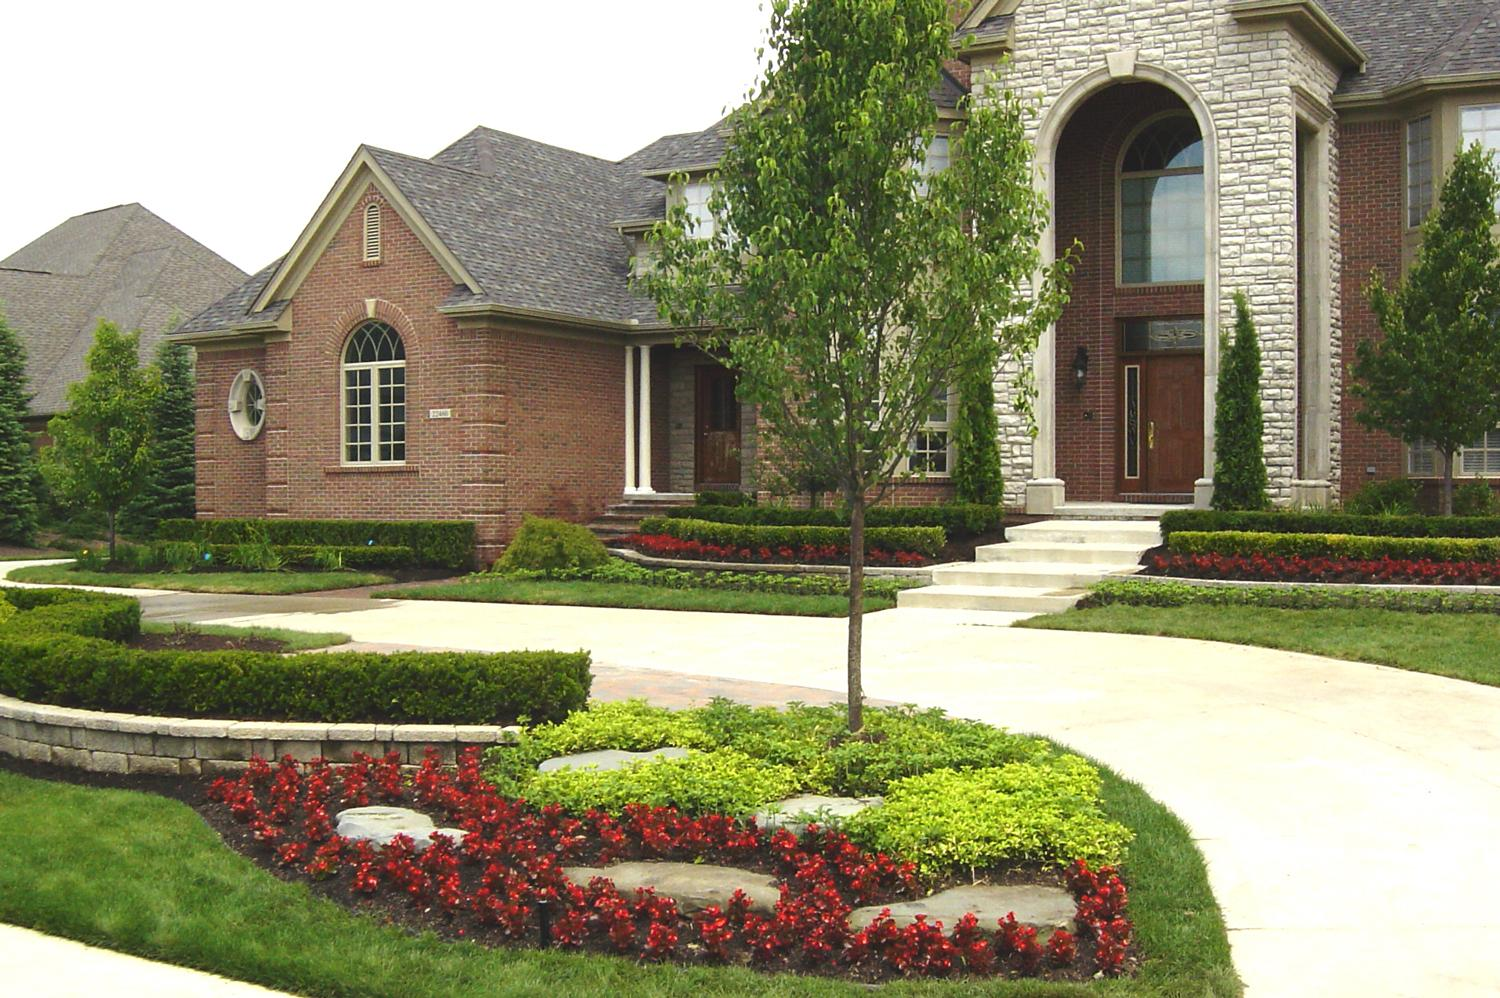 Landscaping ideas front yard small house